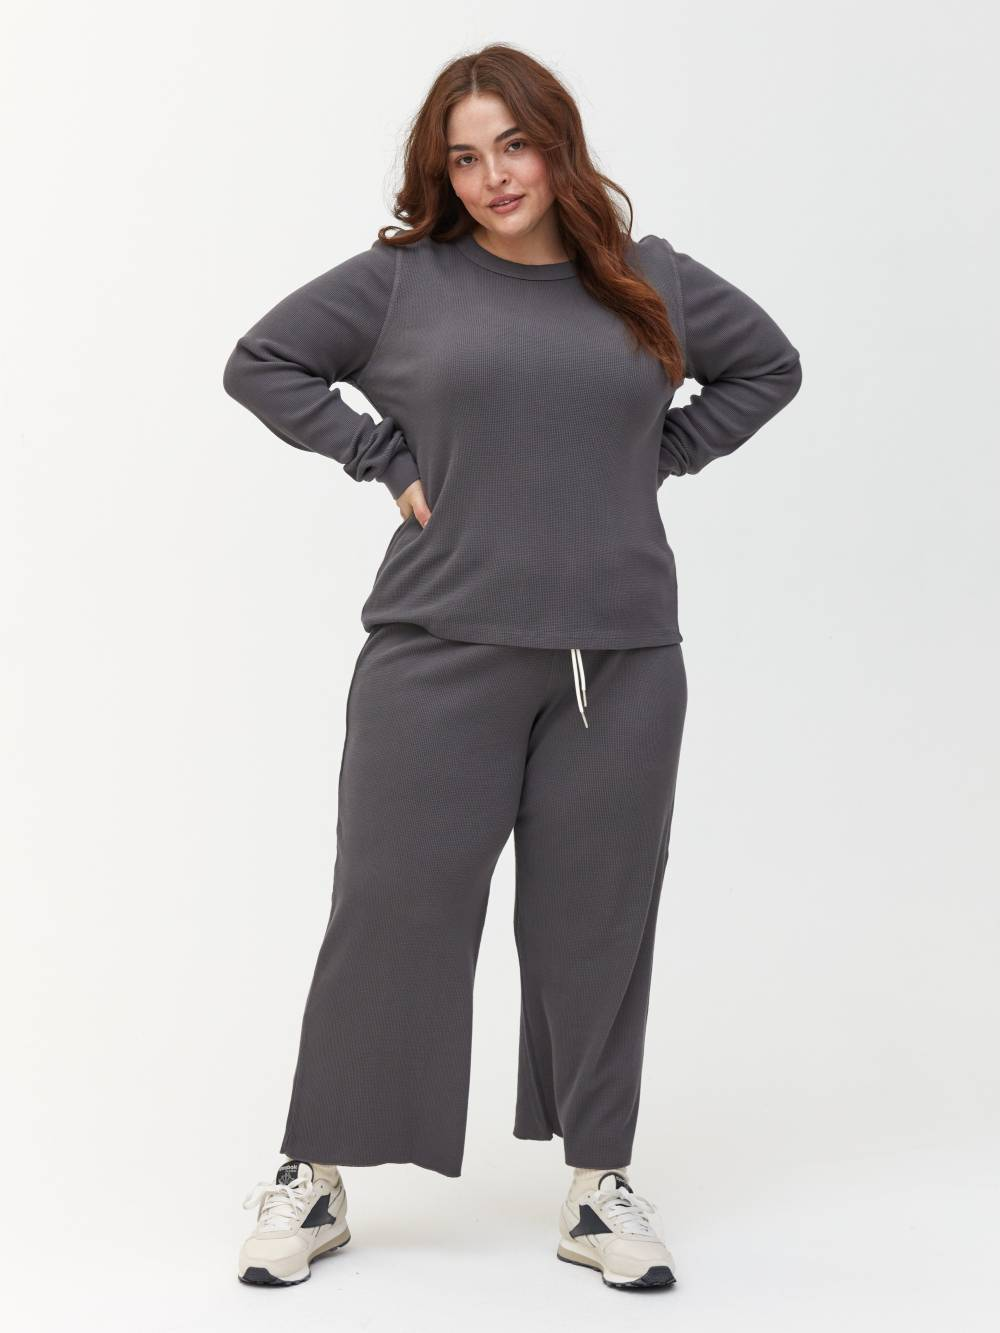 mate ethical plus size clothing brand